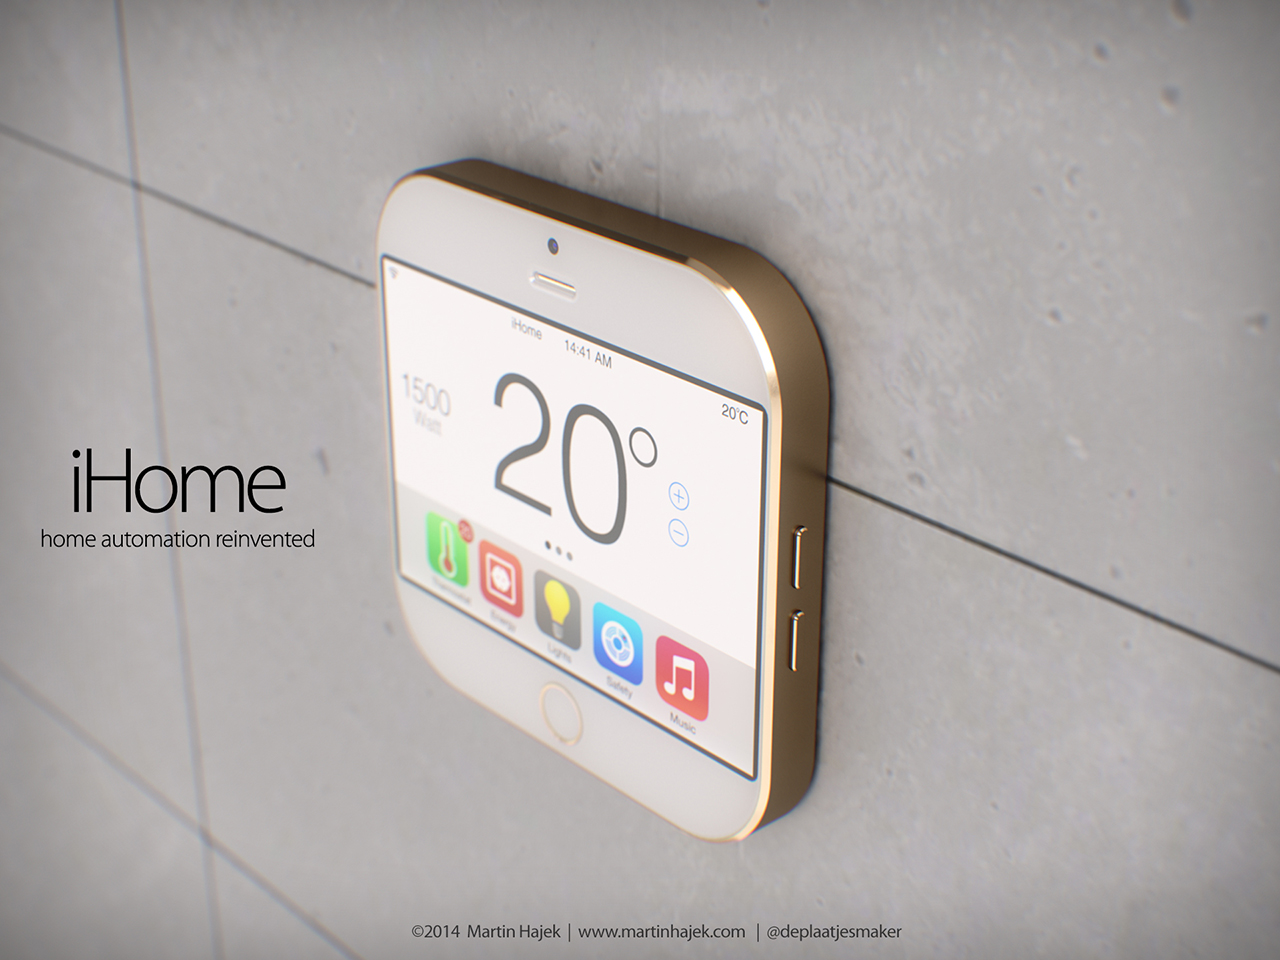 Here's What Apple's 'iHome' Might Look Like [Concept]